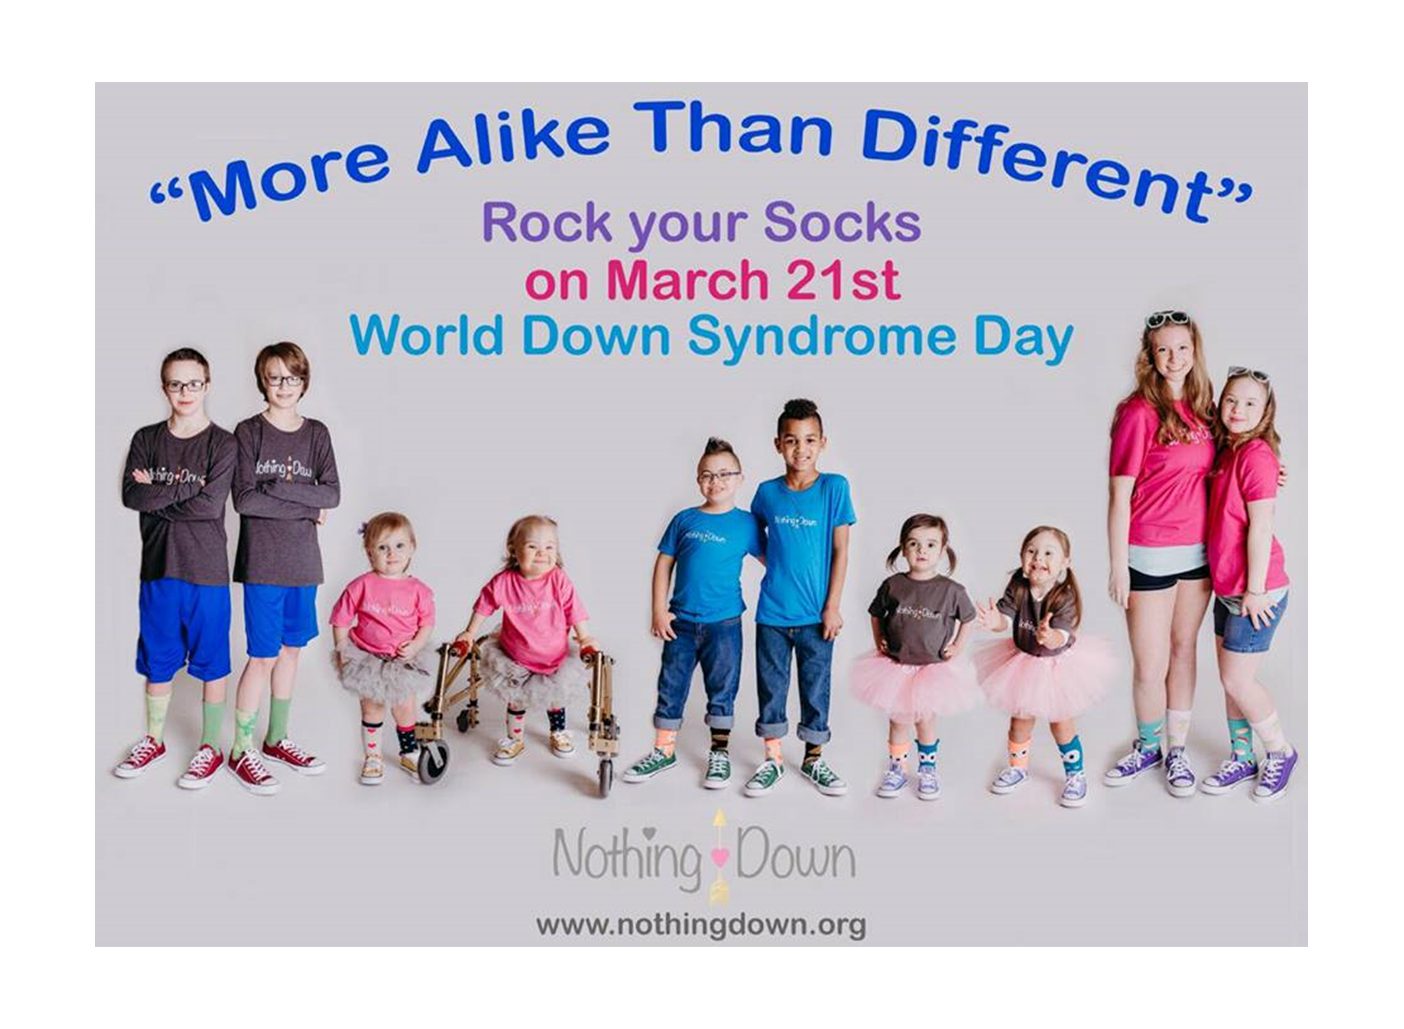 World Down Syndrome Day is March 21st!